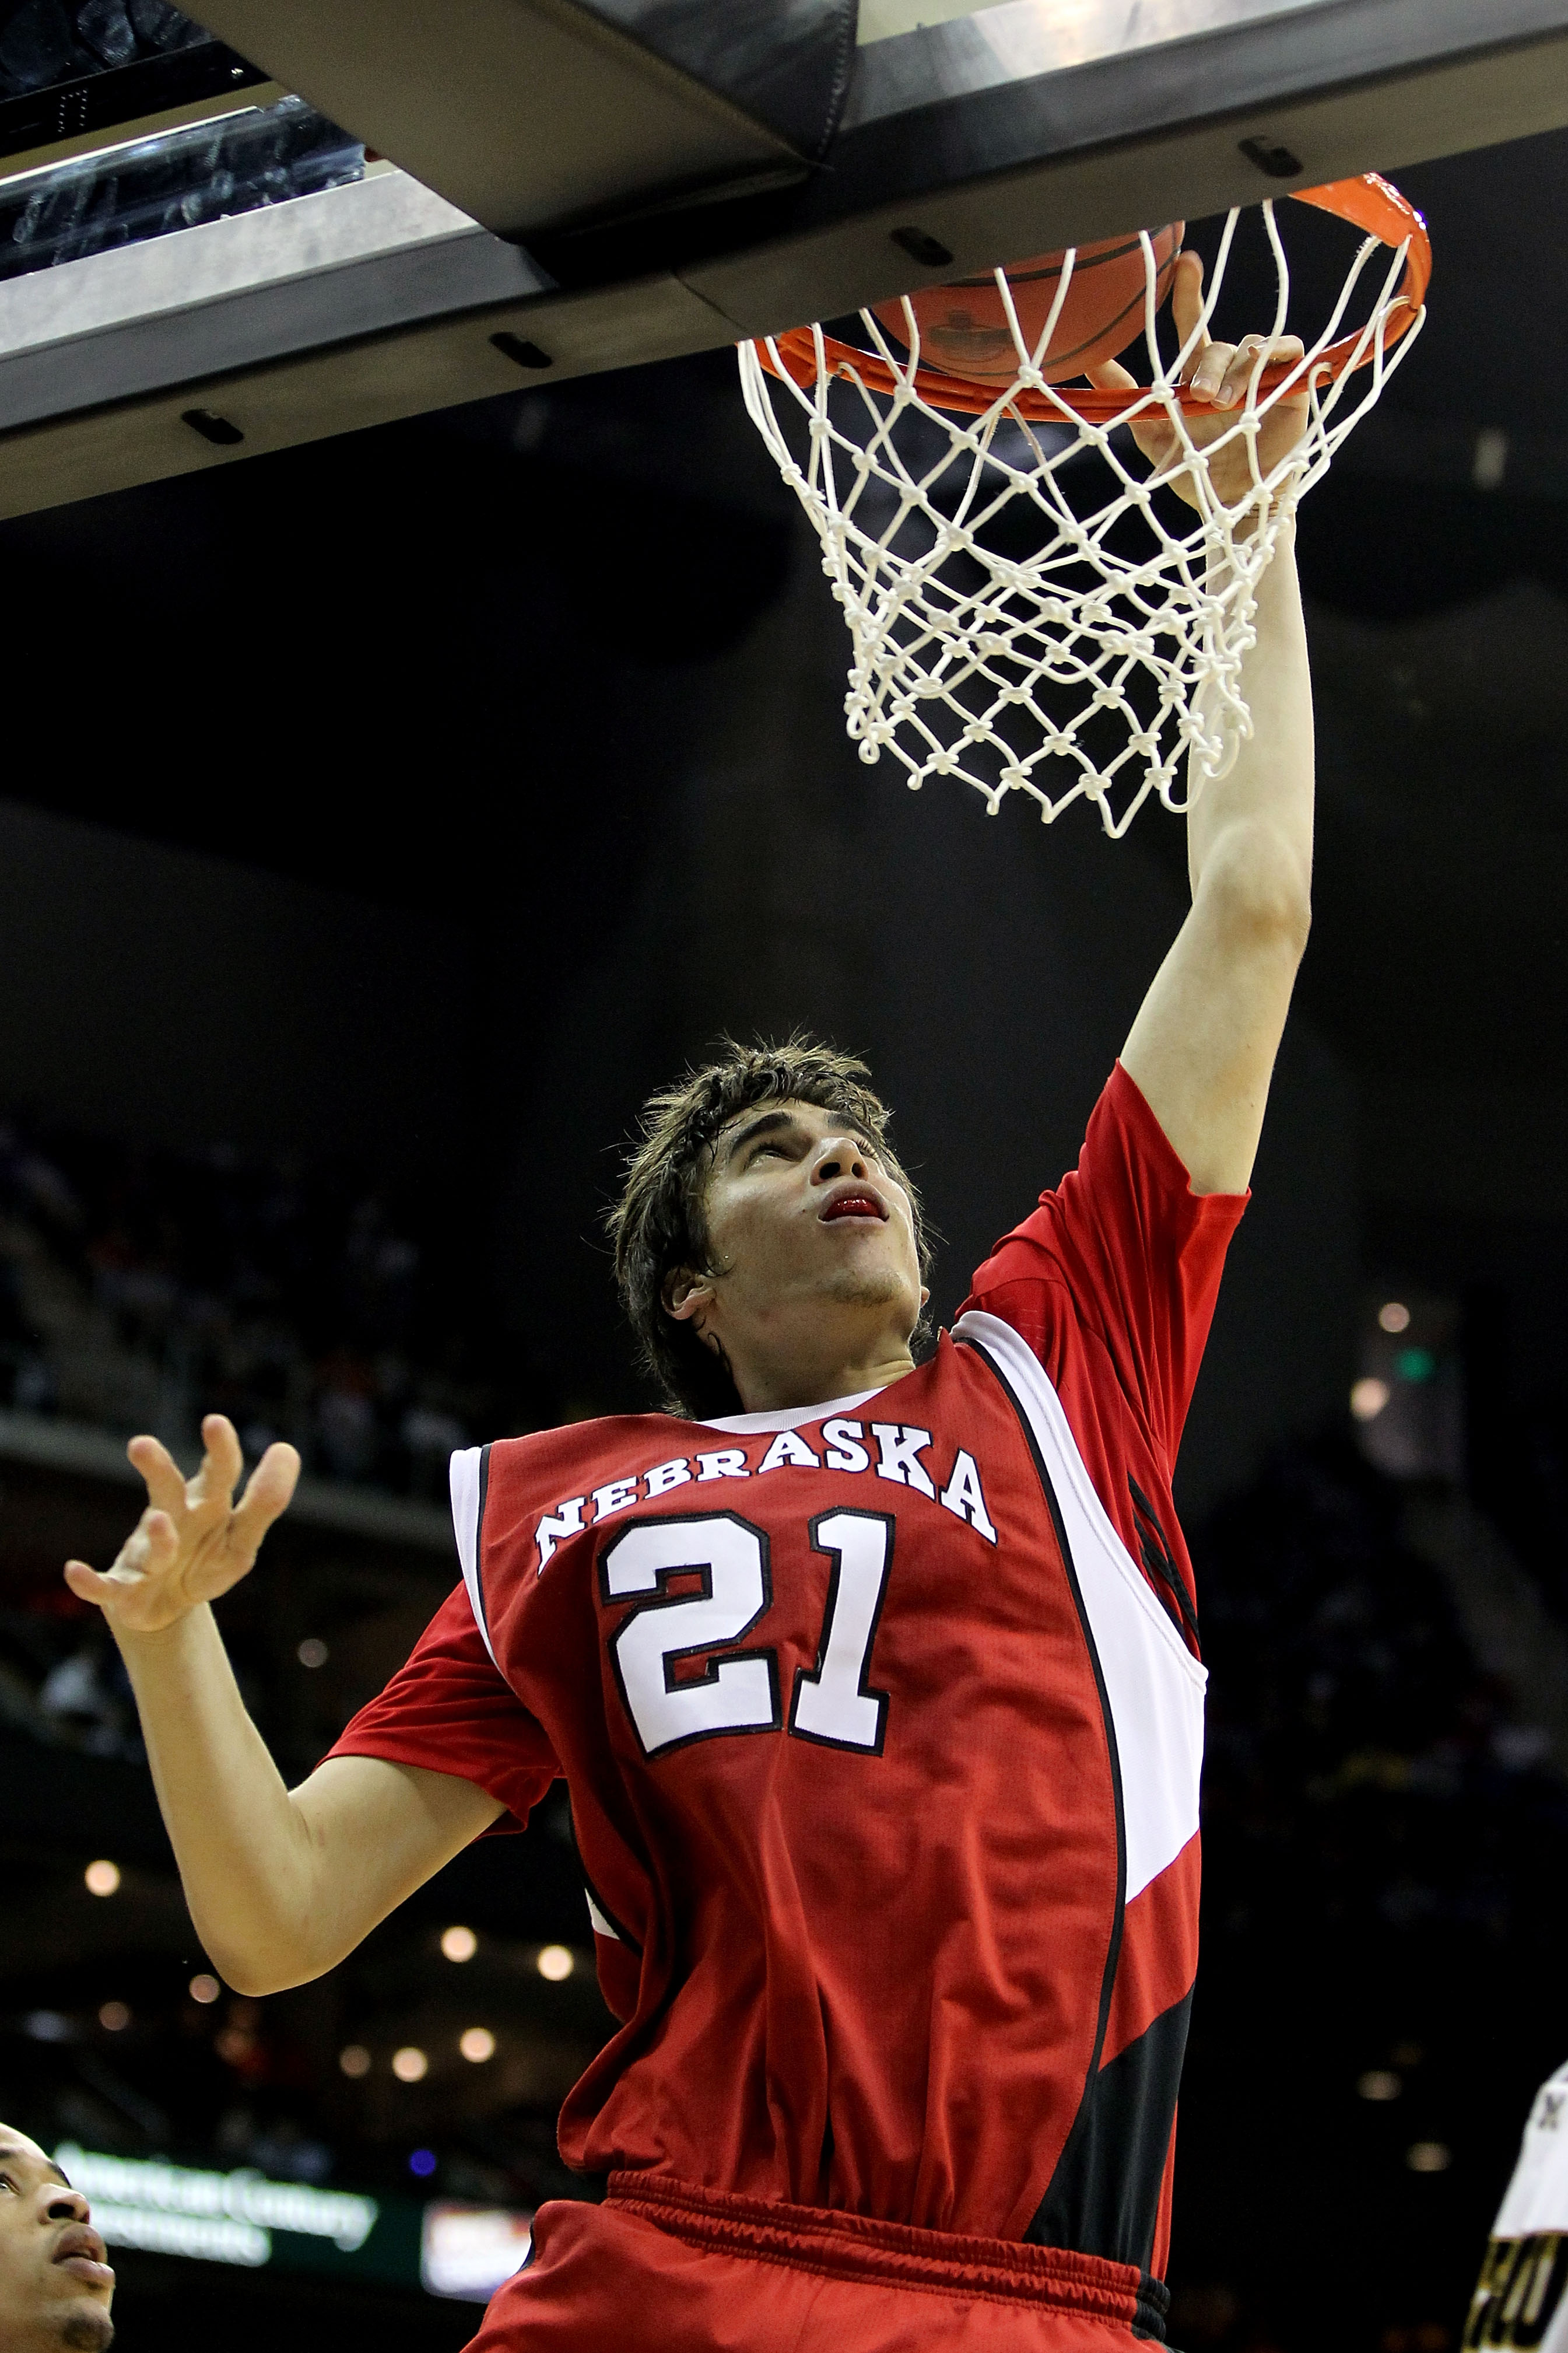 KANSAS CITY, MO - MARCH 10:  Jorge Brian Diaz #21 of the Nebraska Cornhuskers dunks the ball against the Missouri Tigers in the second half during the first round game of the 2010 Phillips 66 Big 12 Men's Basketball Tournament at the Sprint Center on Marc